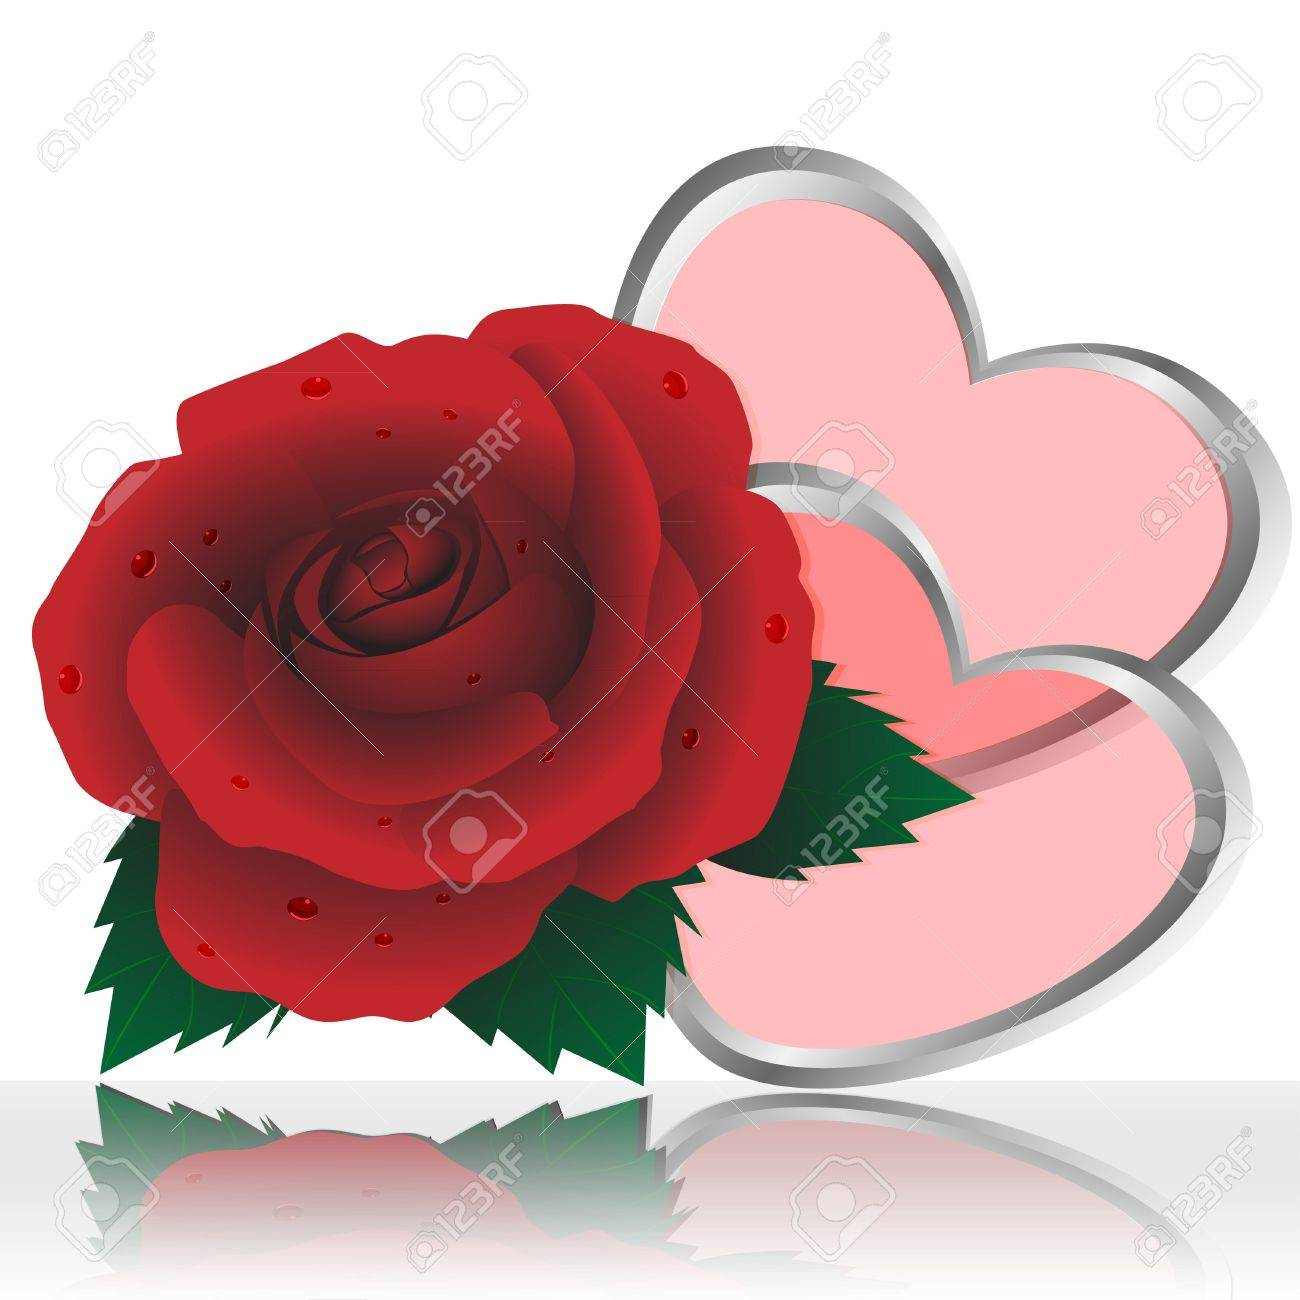 Two Hearts And Rose Of Red Color On A White Background Royalty Free ...